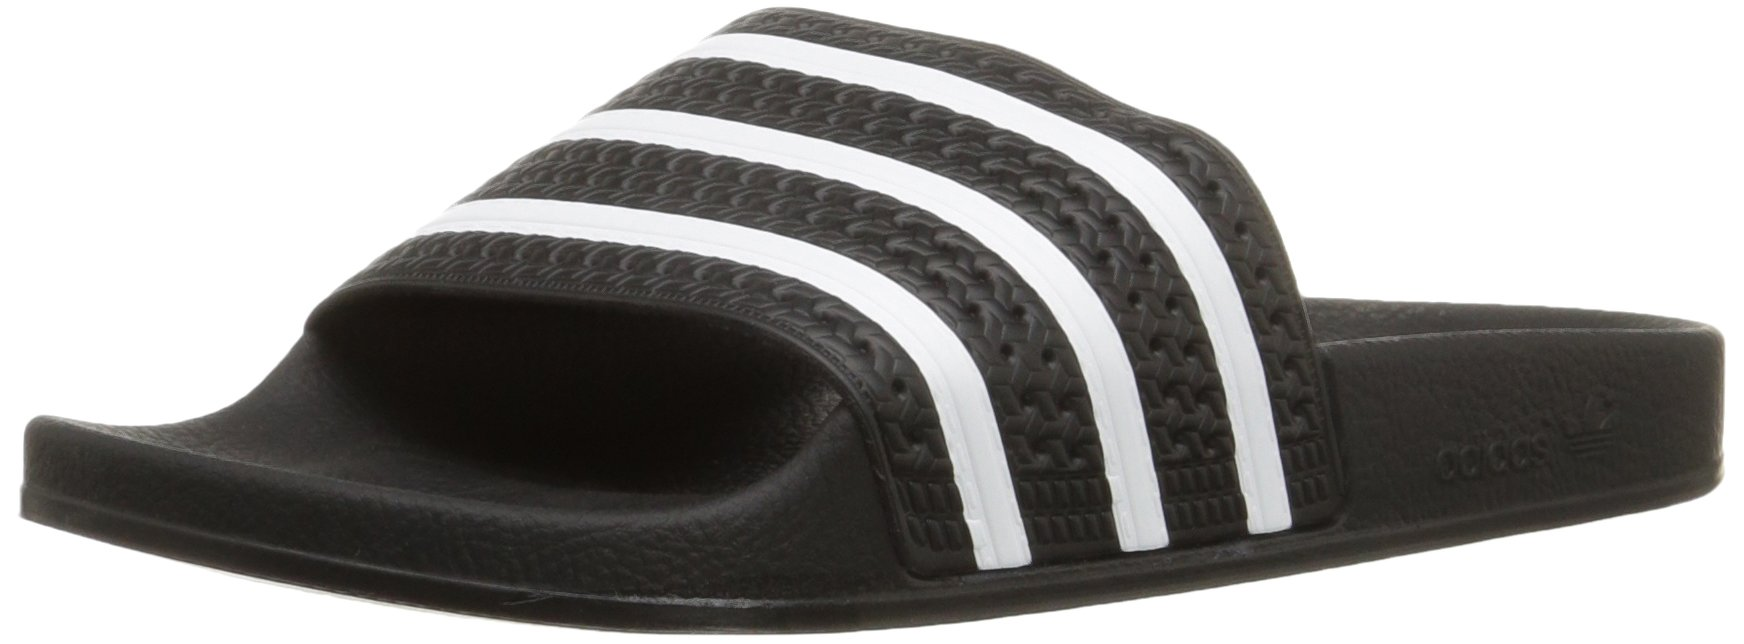 adidas Originals Men's Adilette Slide Sandal,Black/White/Black,13 M US